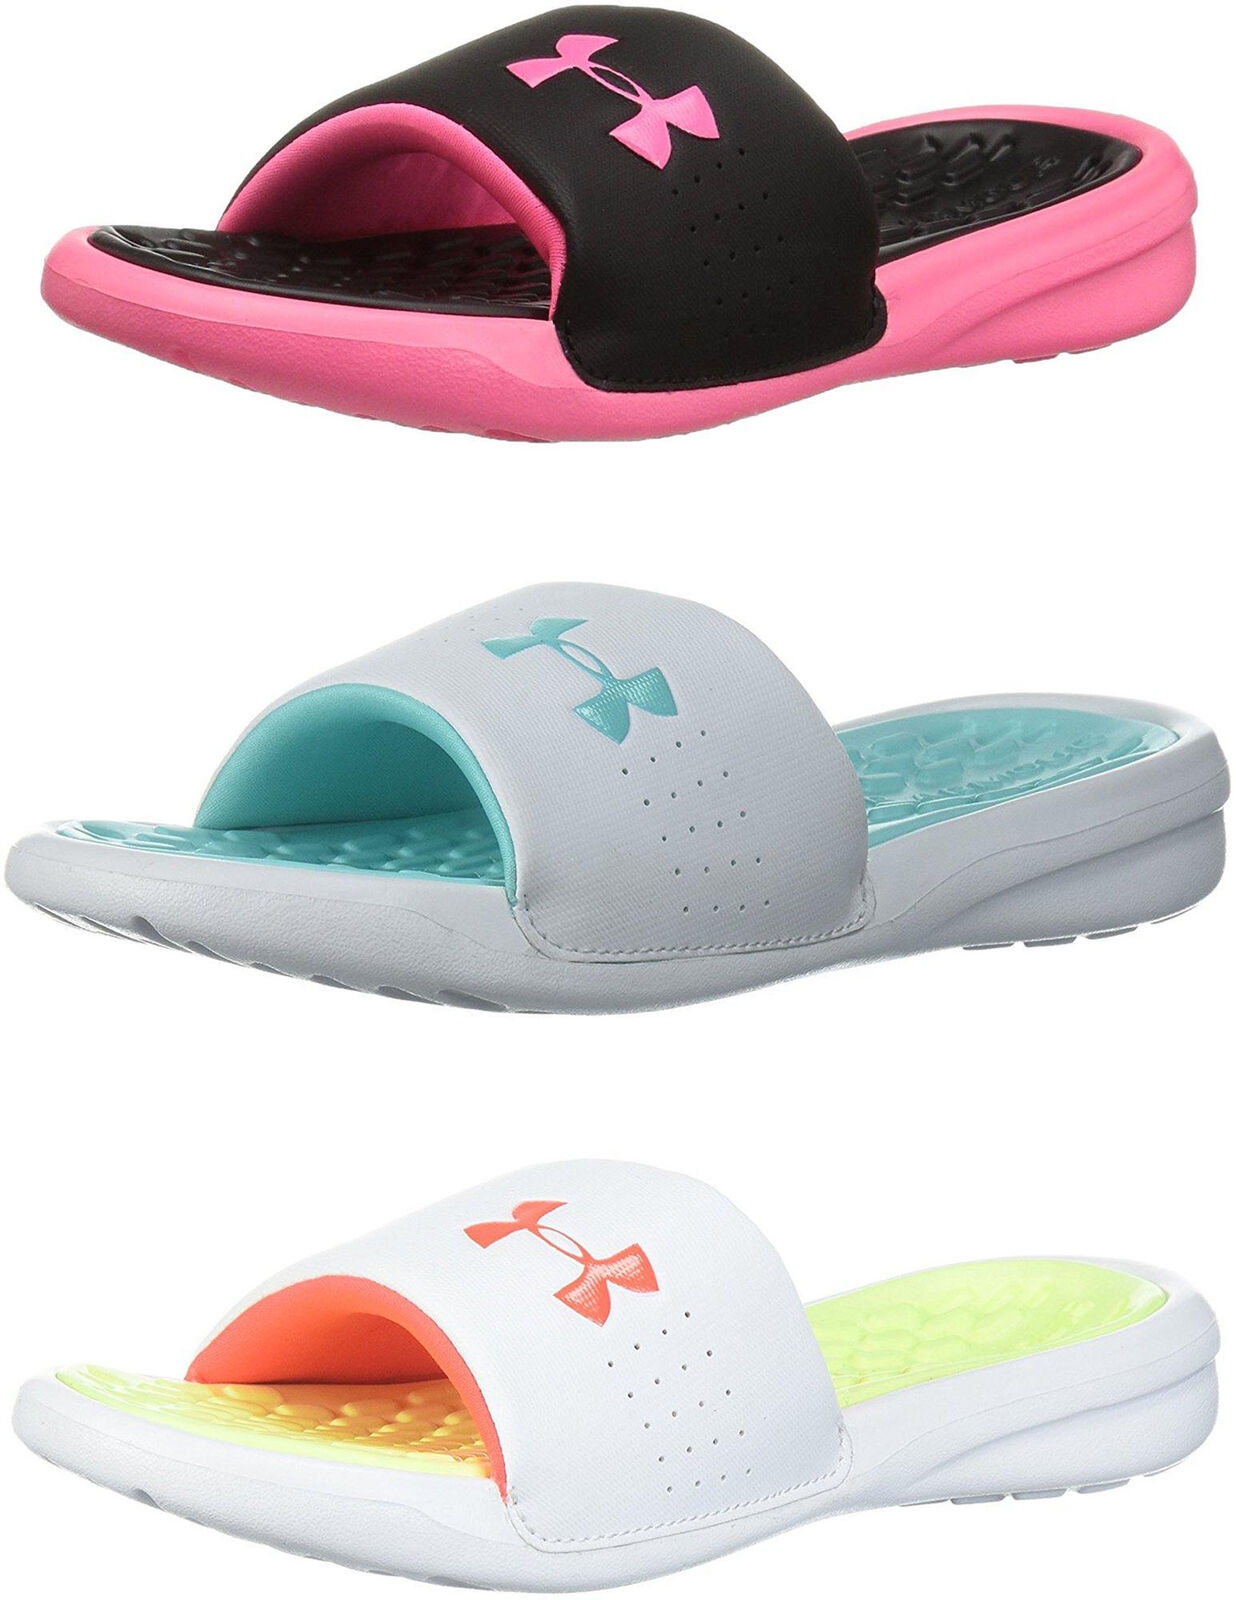 Girls Under Armour Slides Playmaker Fixed Strap Pink Post Work Out Sandals NEW